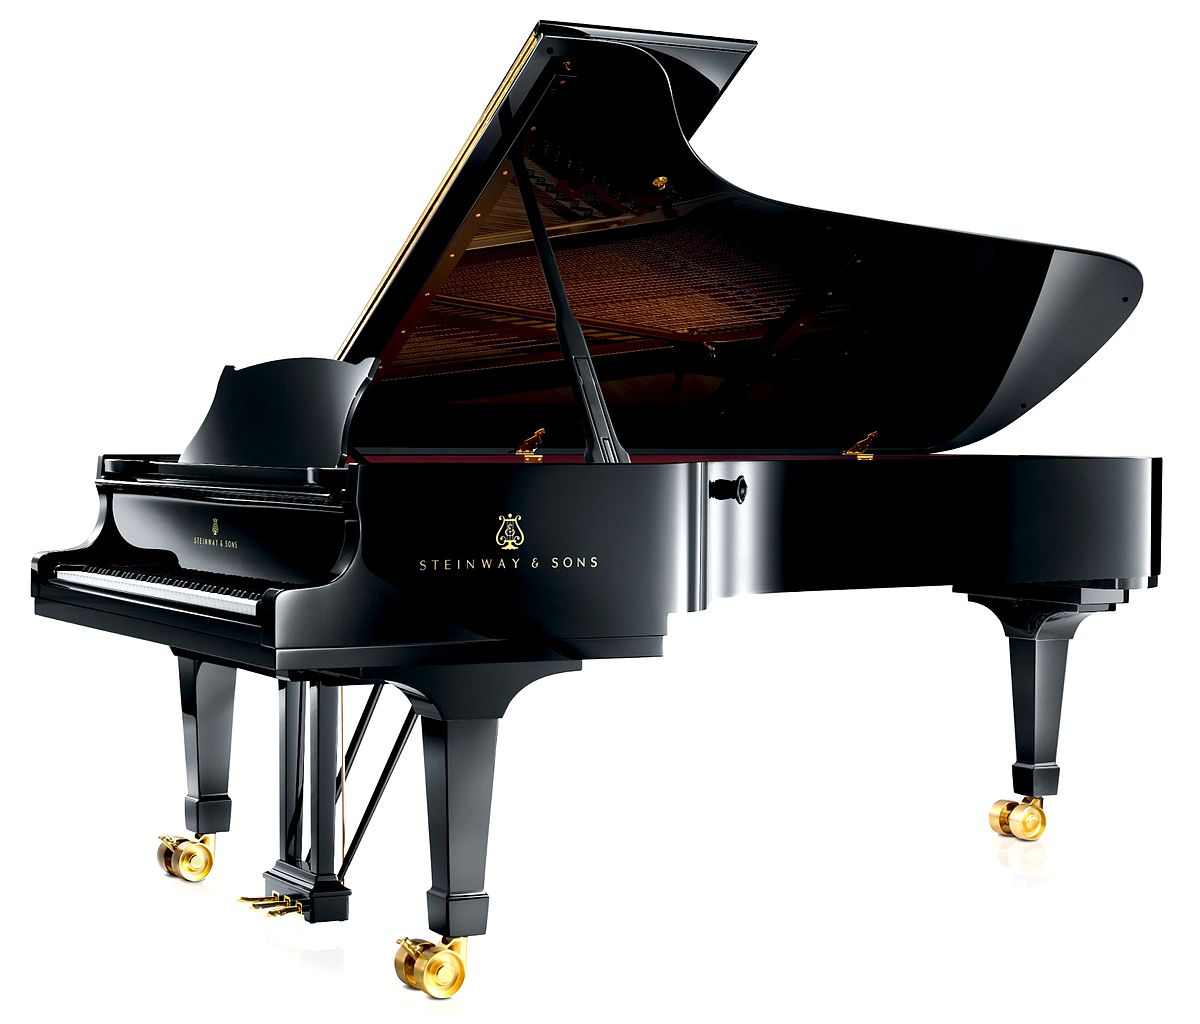 1200px-Steinway_&_Sons_concert_grand_piano,_model_D-274,_manufactured_at_Steinway's_factory_in_Hamburg,_Germany_cropped.jpg